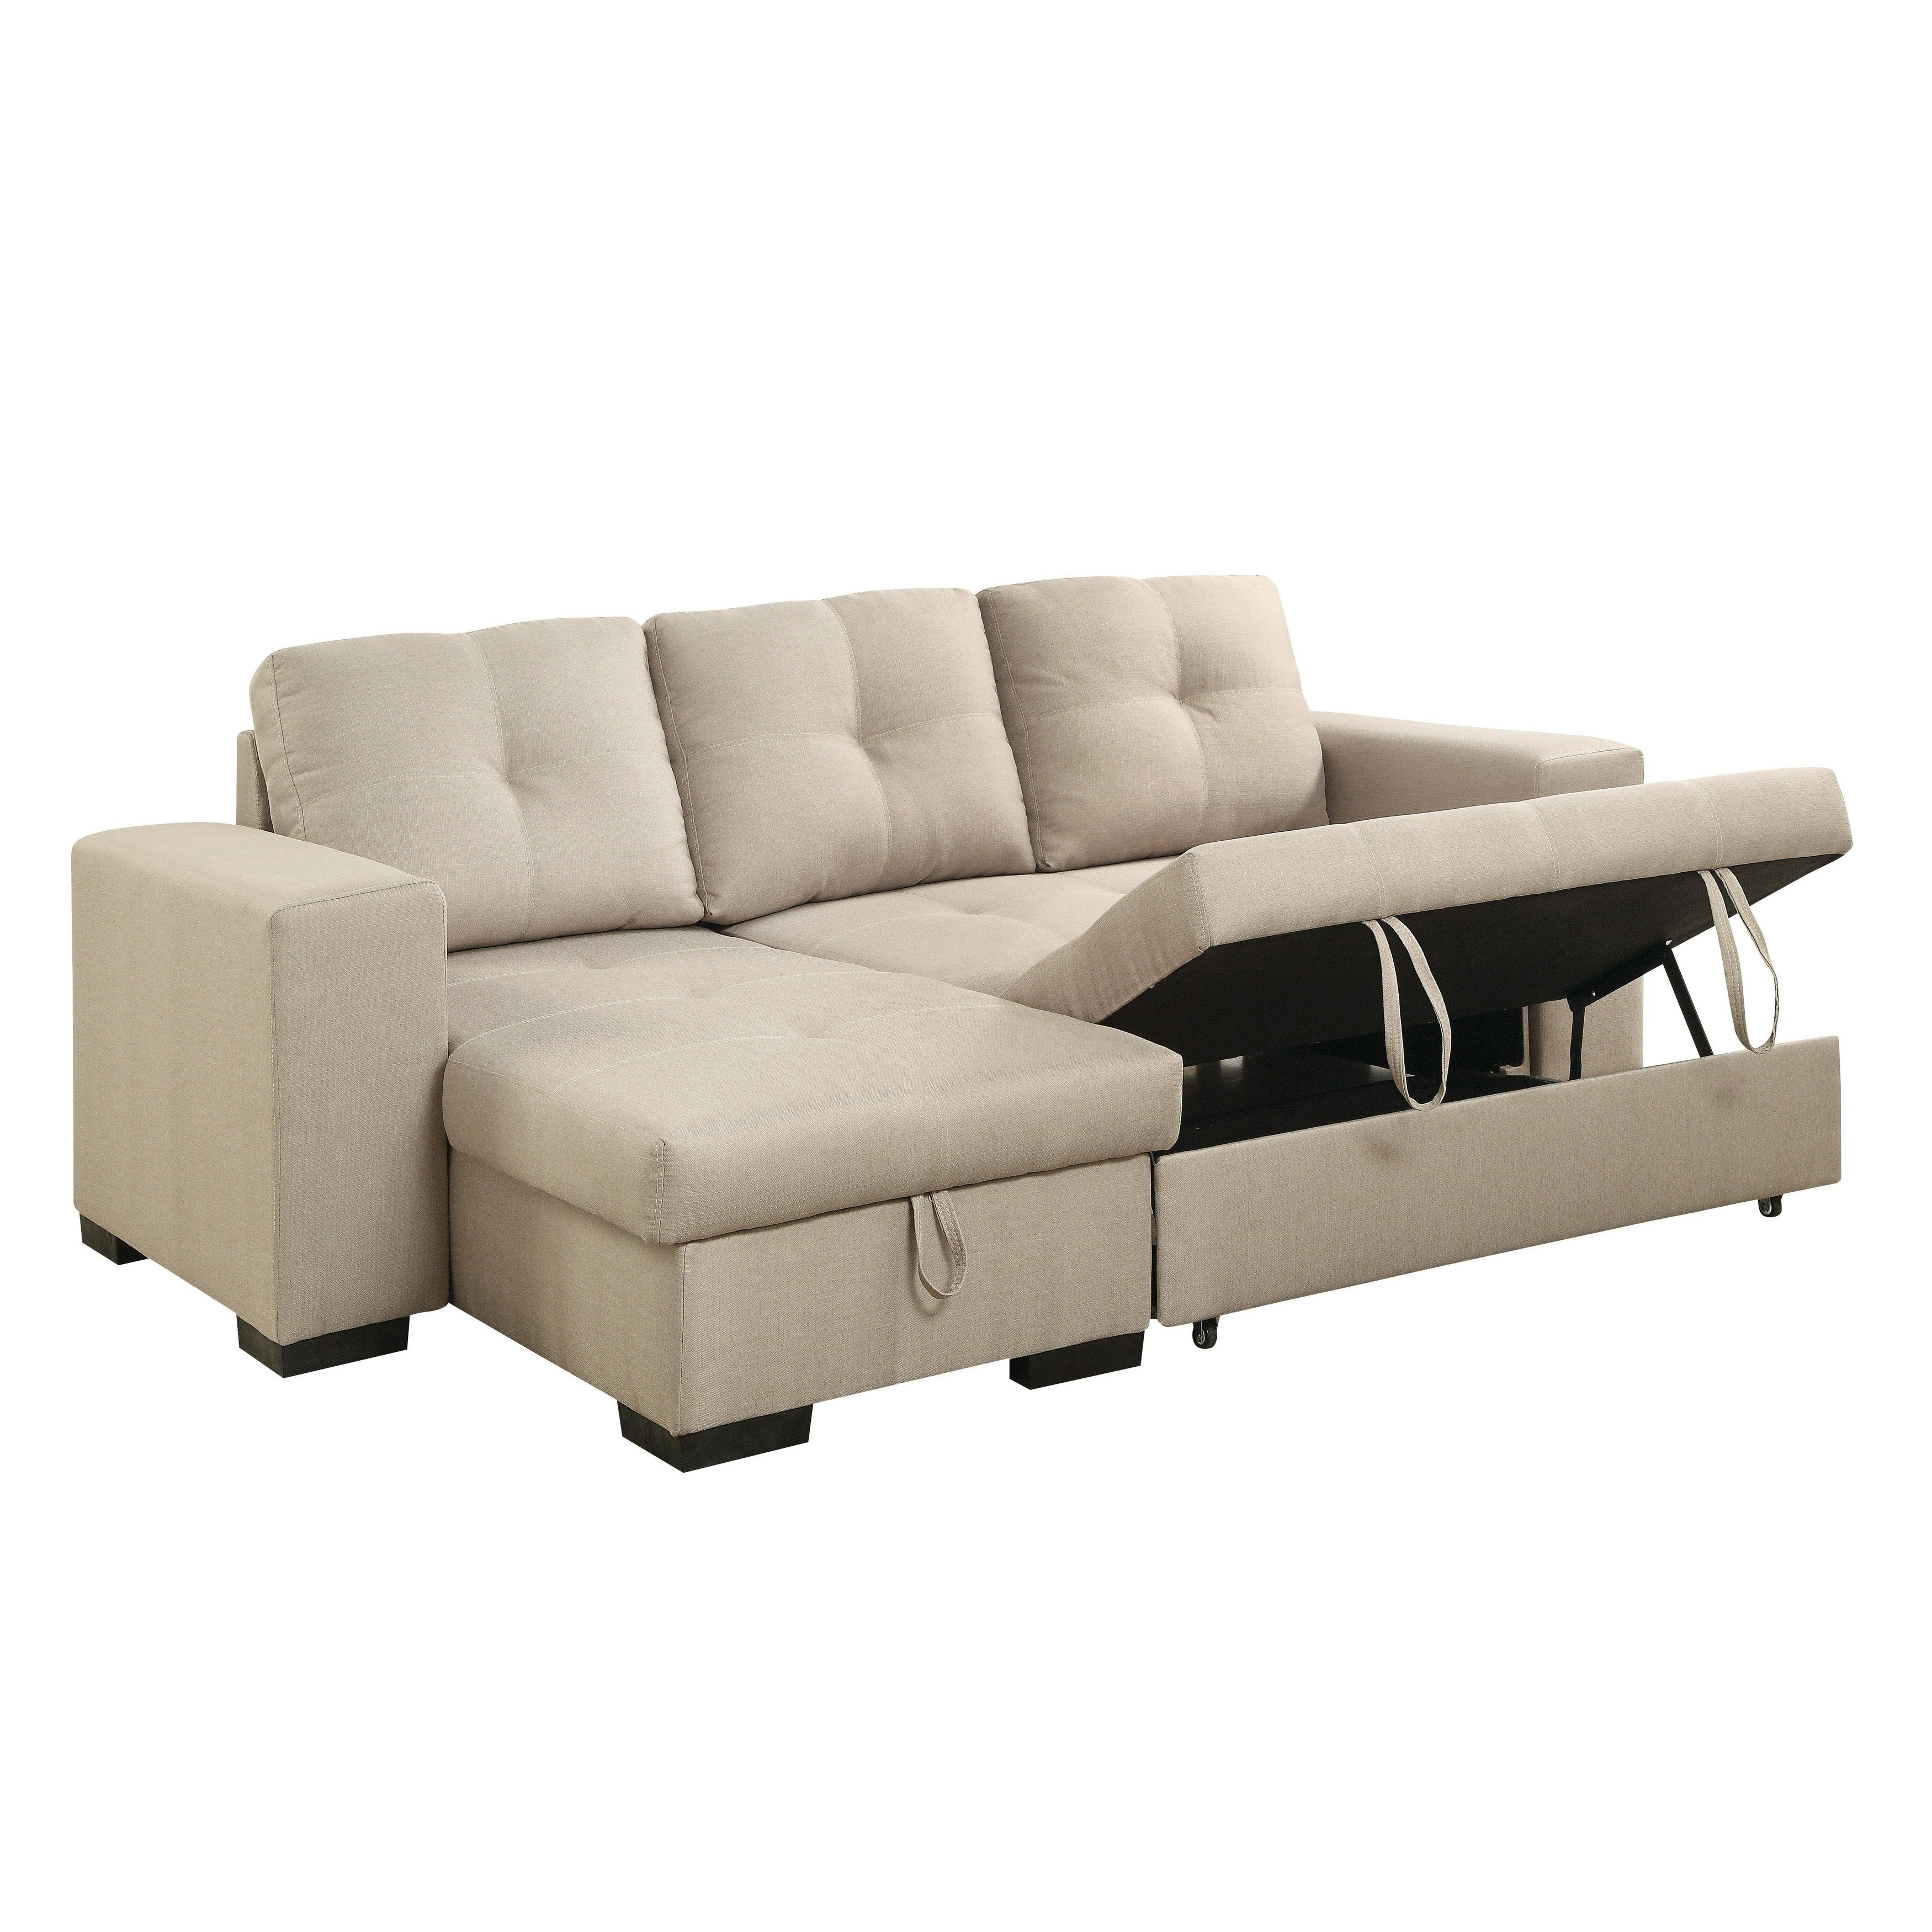 Reversible Sofa Bed | Baci Living Room With Regard To Taren Reversible Sofa/chaise Sleeper Sectionals With Storage Ottoman (Image 15 of 25)